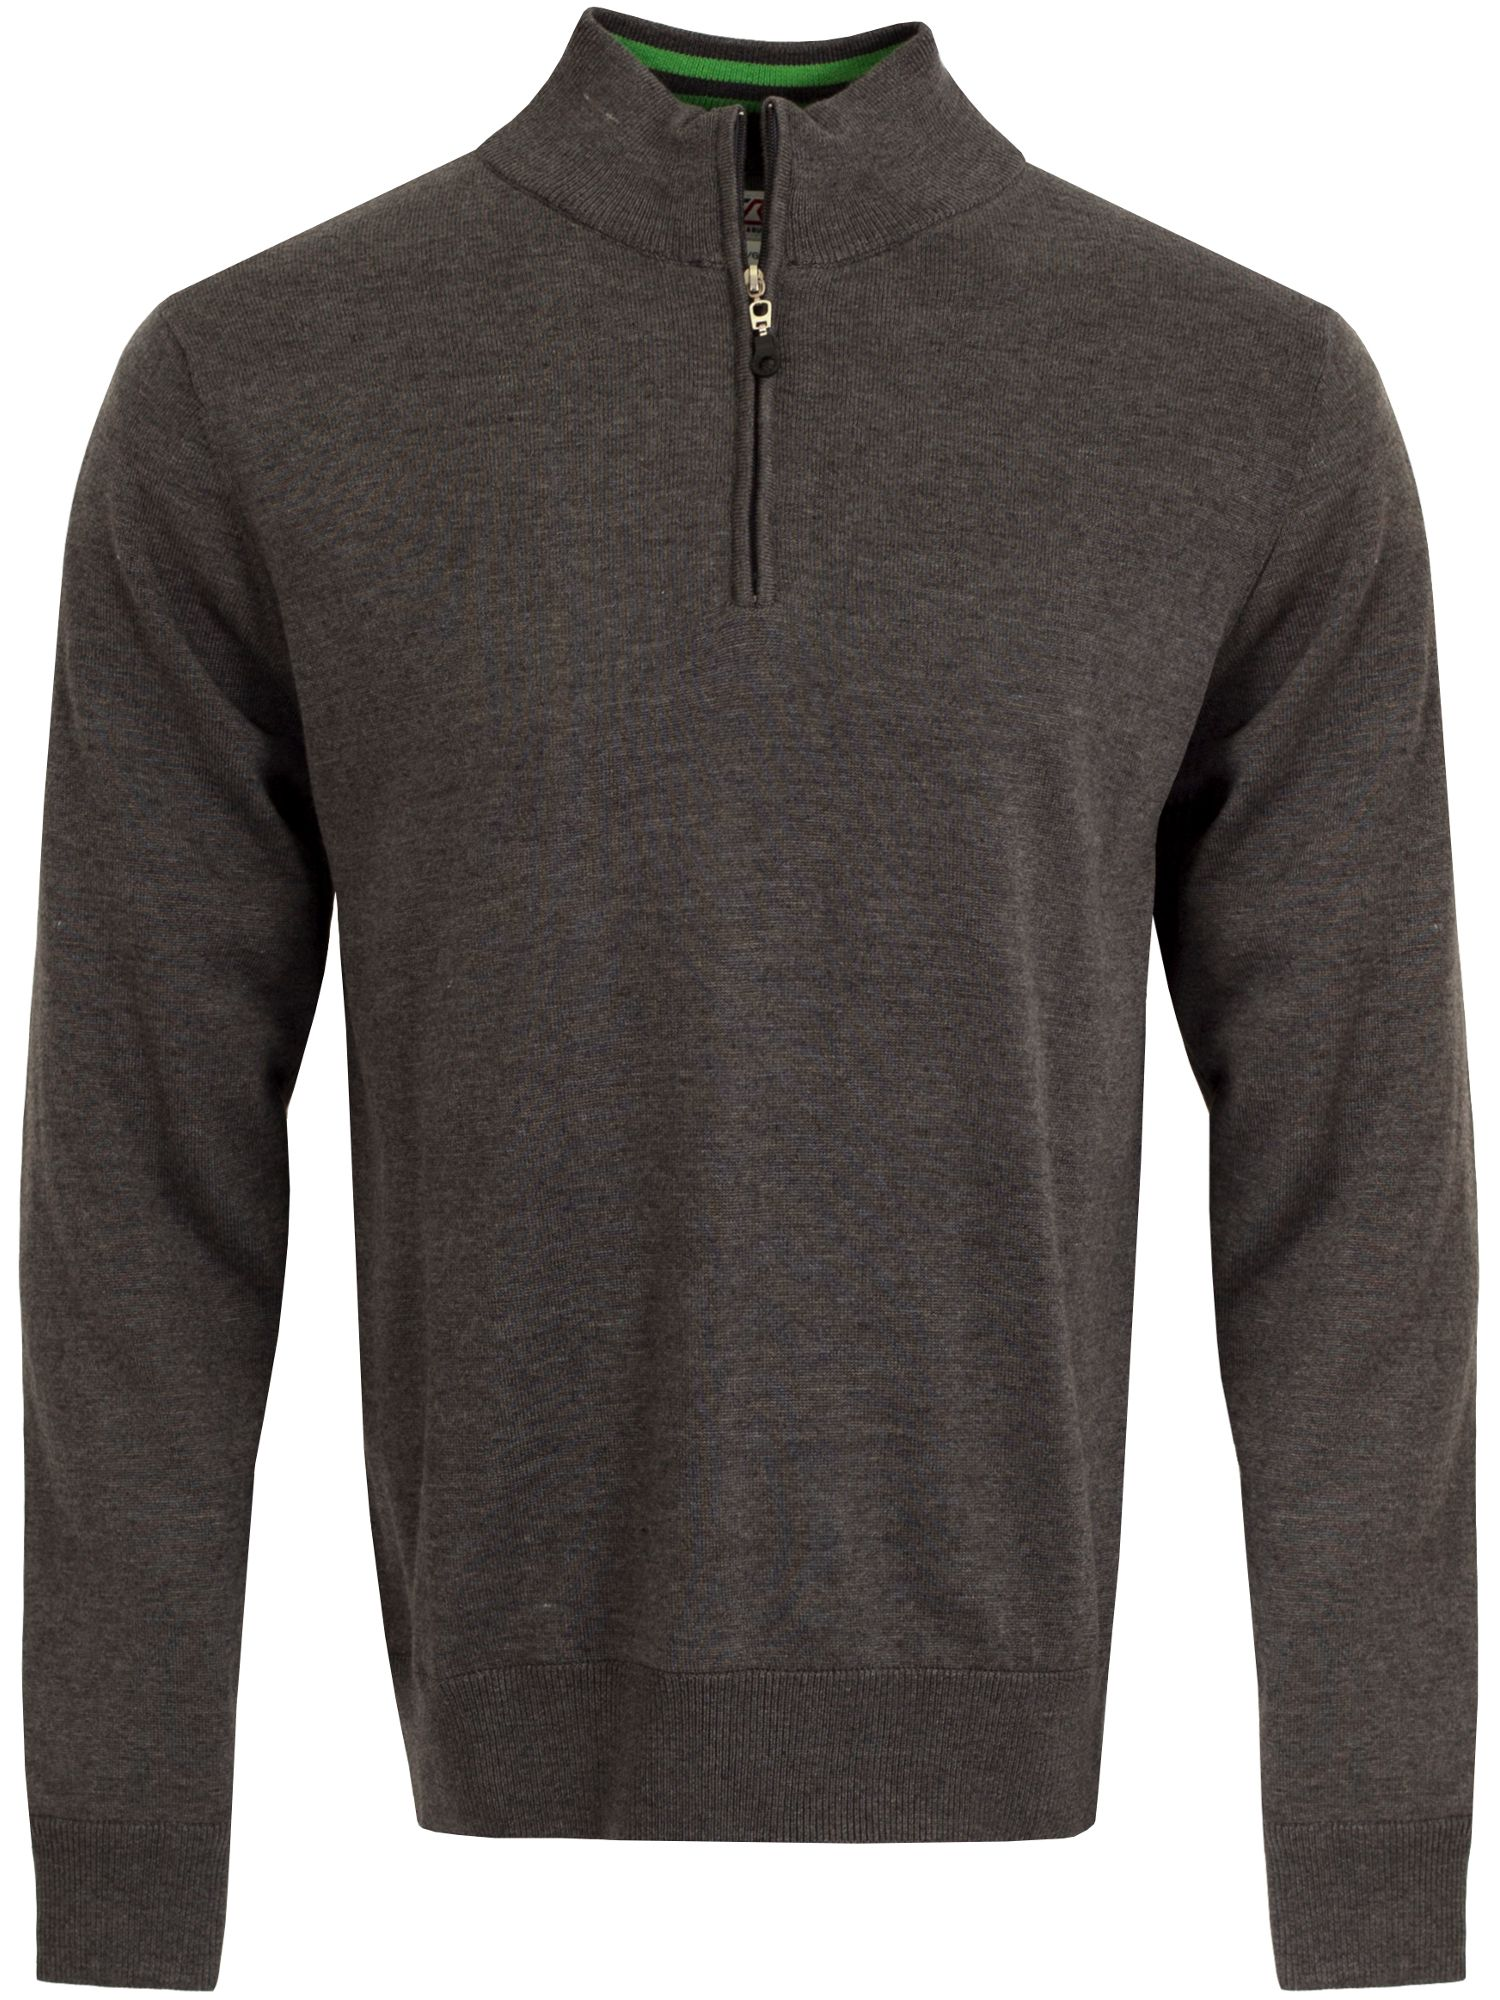 Cutter and Buck Men's Cutter and Buck Vancouver WindBlock Sweater, Charcoal